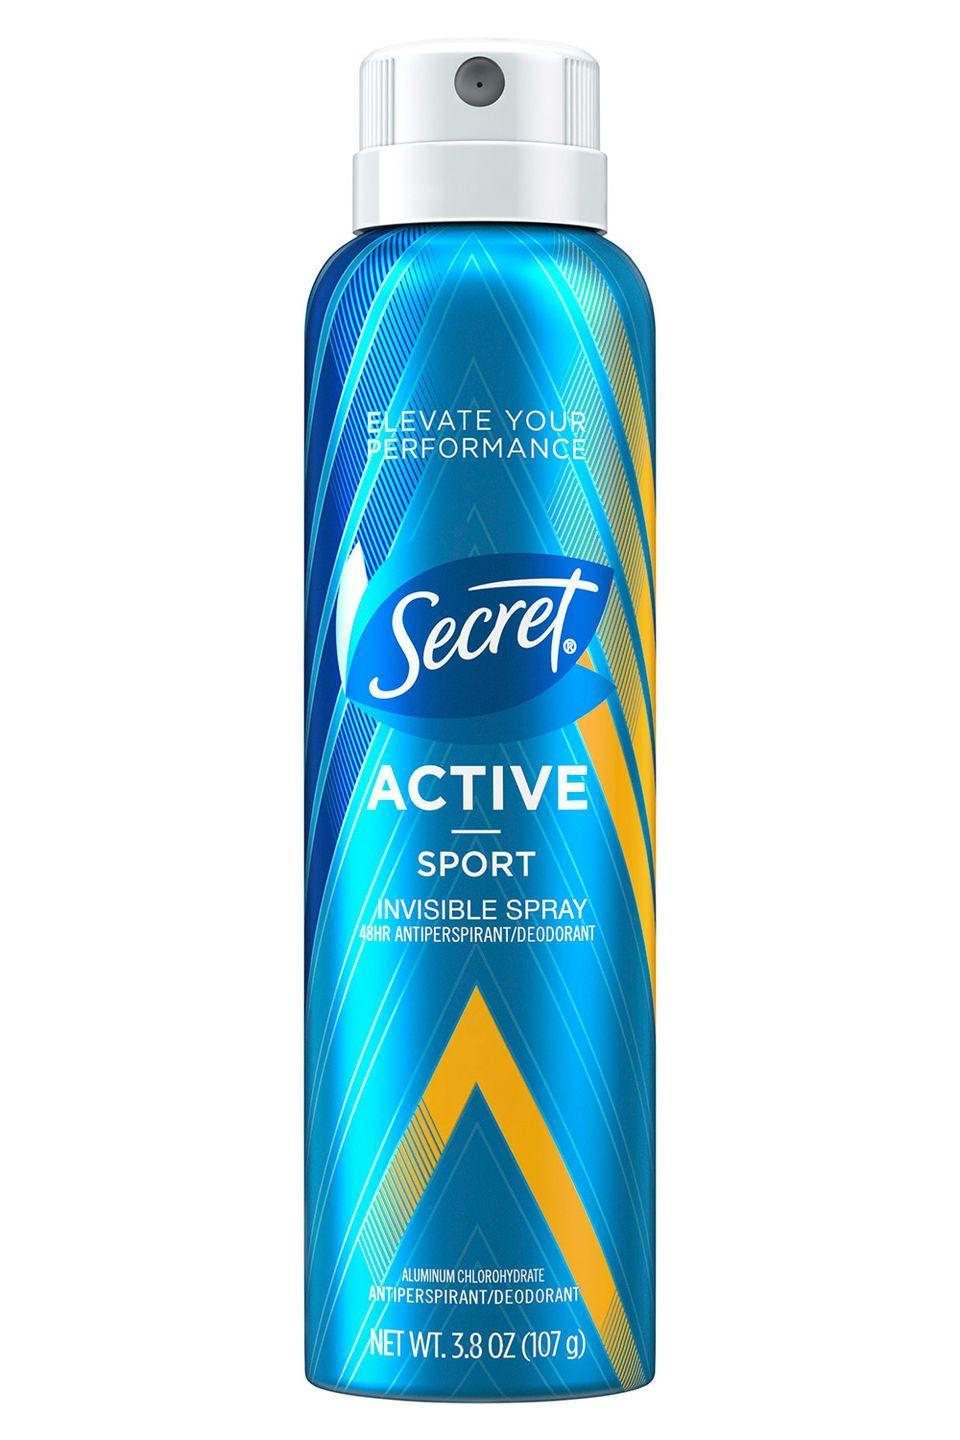 """<p>Bye-bye sweat stains, hello all-day freshness. </p><p>Secret Active Invisible Spray in Sport, $5, <a href=""""https://www.target.com/p/secret-active-sport-invisible-spray-antiperspirant-and-deodorant-3-8oz/-/A-52733686"""" rel=""""nofollow noopener"""" target=""""_blank"""" data-ylk=""""slk:target.com"""" class=""""link rapid-noclick-resp"""">target.com</a></p>"""